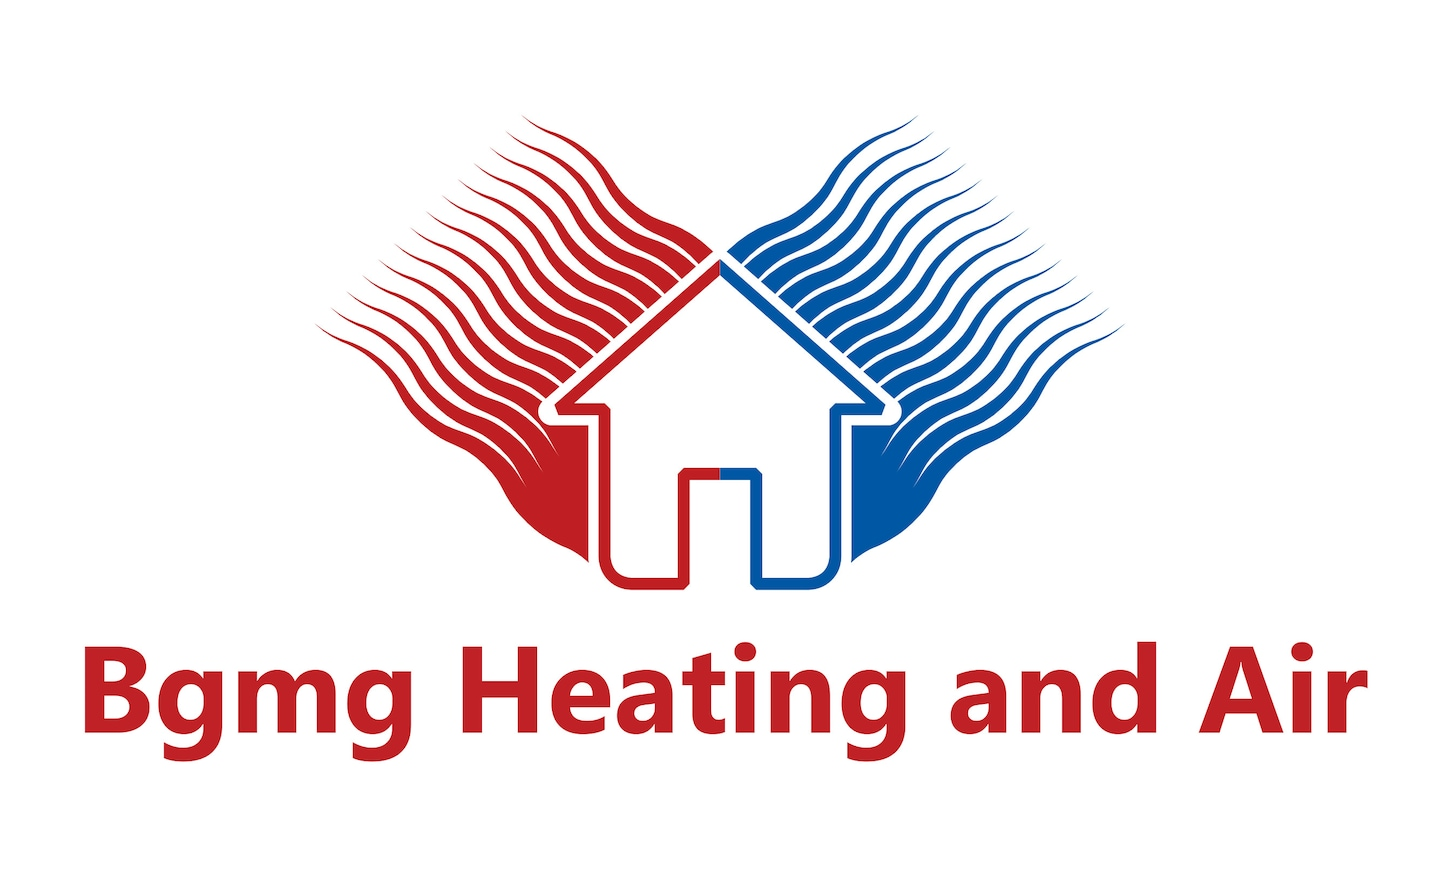 BGMG heating and air